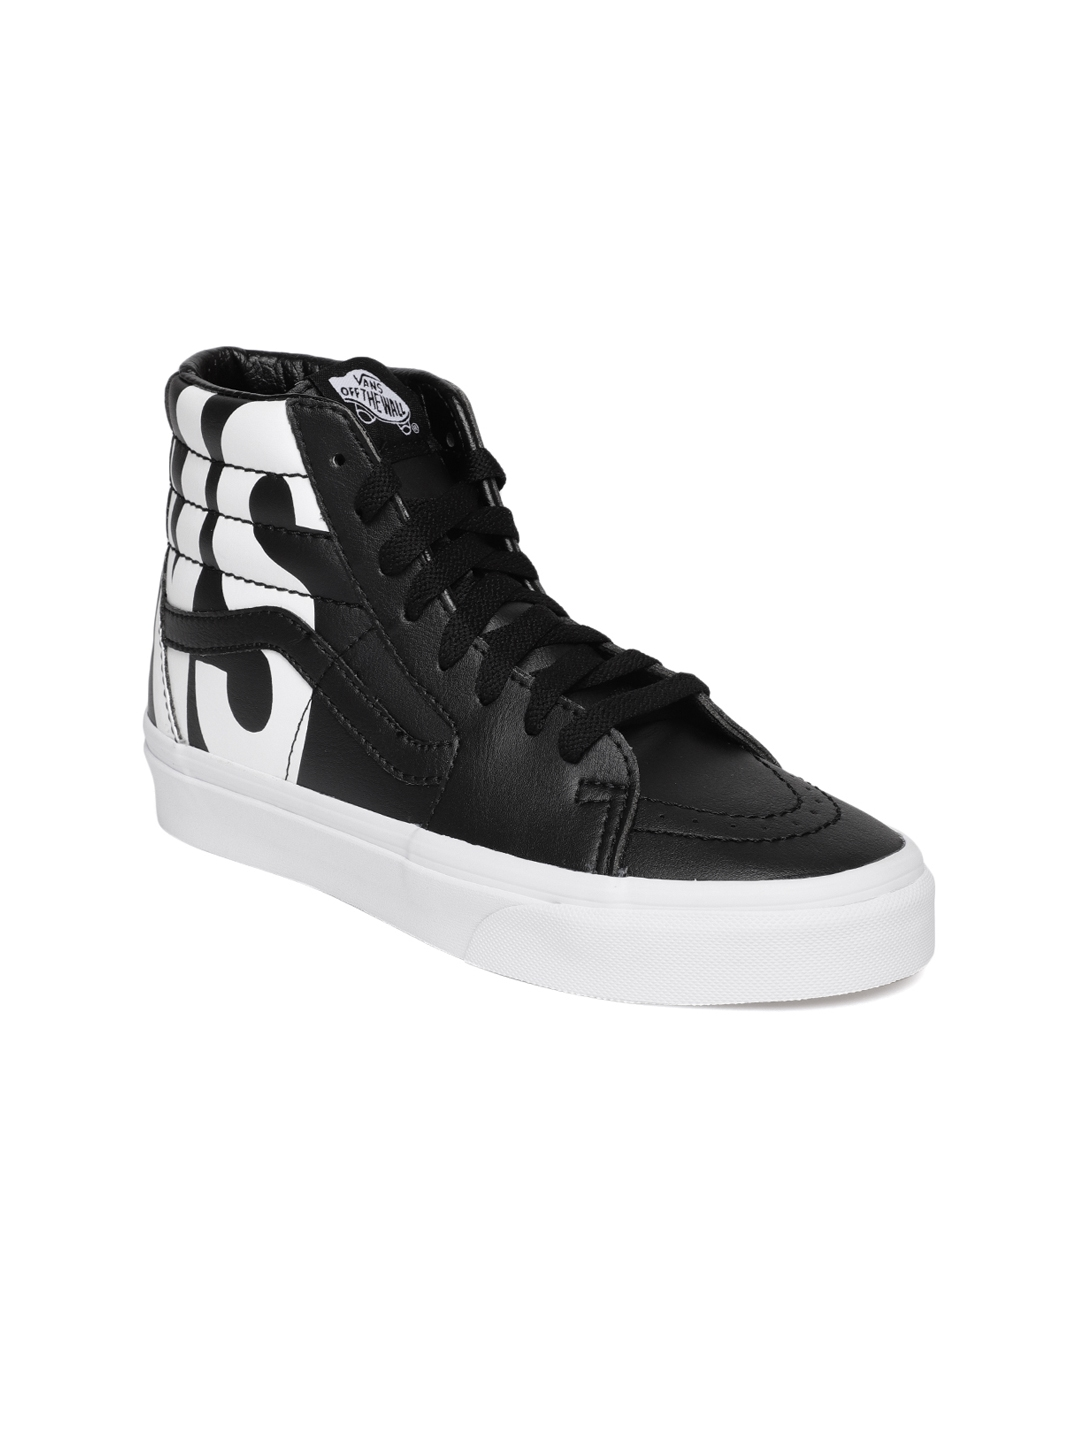 8a6032e58eee Buy Vans Unisex Black SK8 Hi Solid Synthetic High Top Sneakers ...